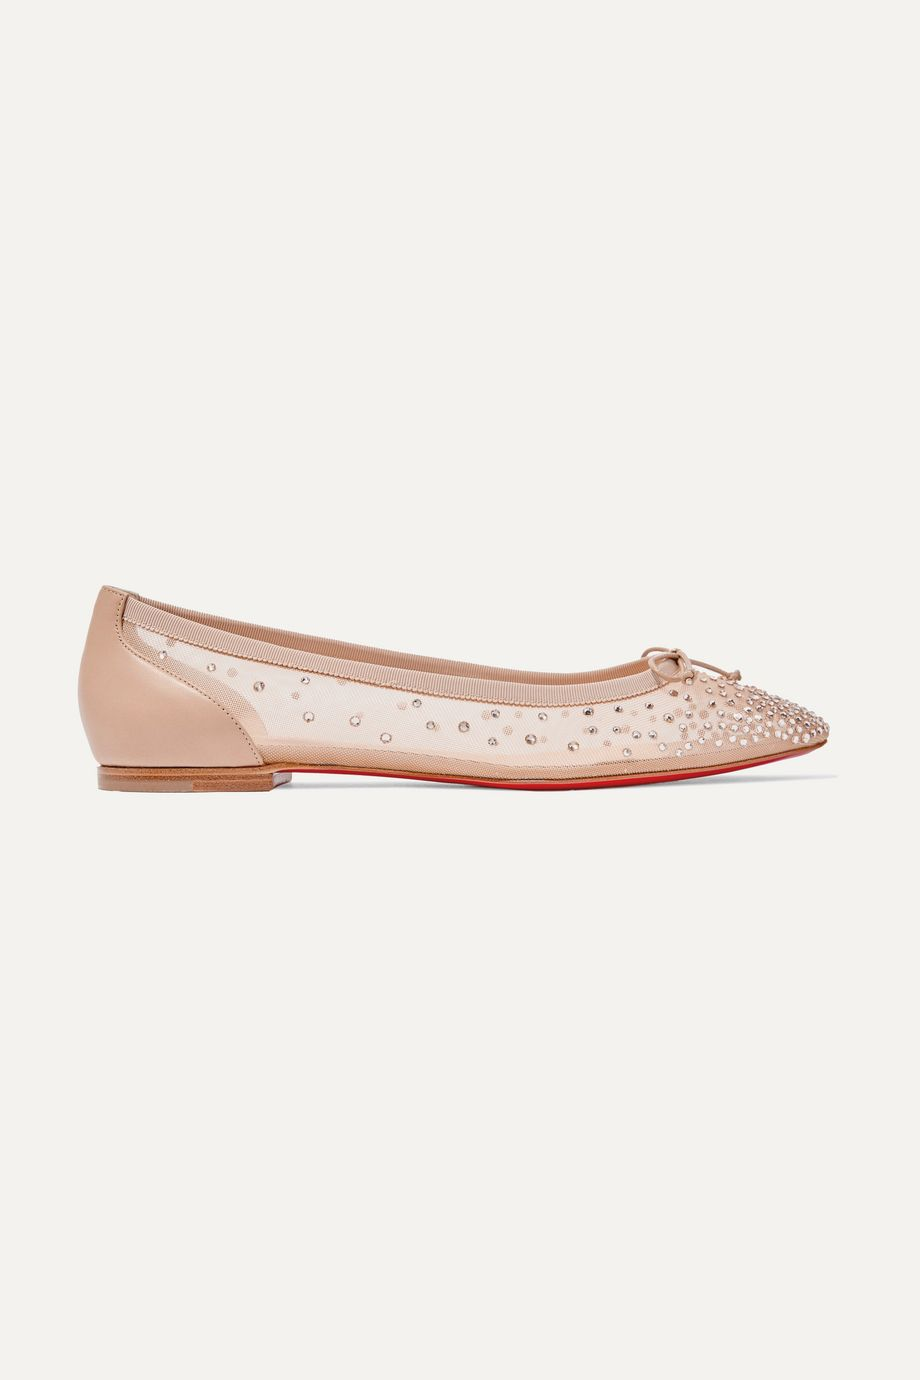 Christian Louboutin Patio crystal-embellished mesh and leather ballet flats